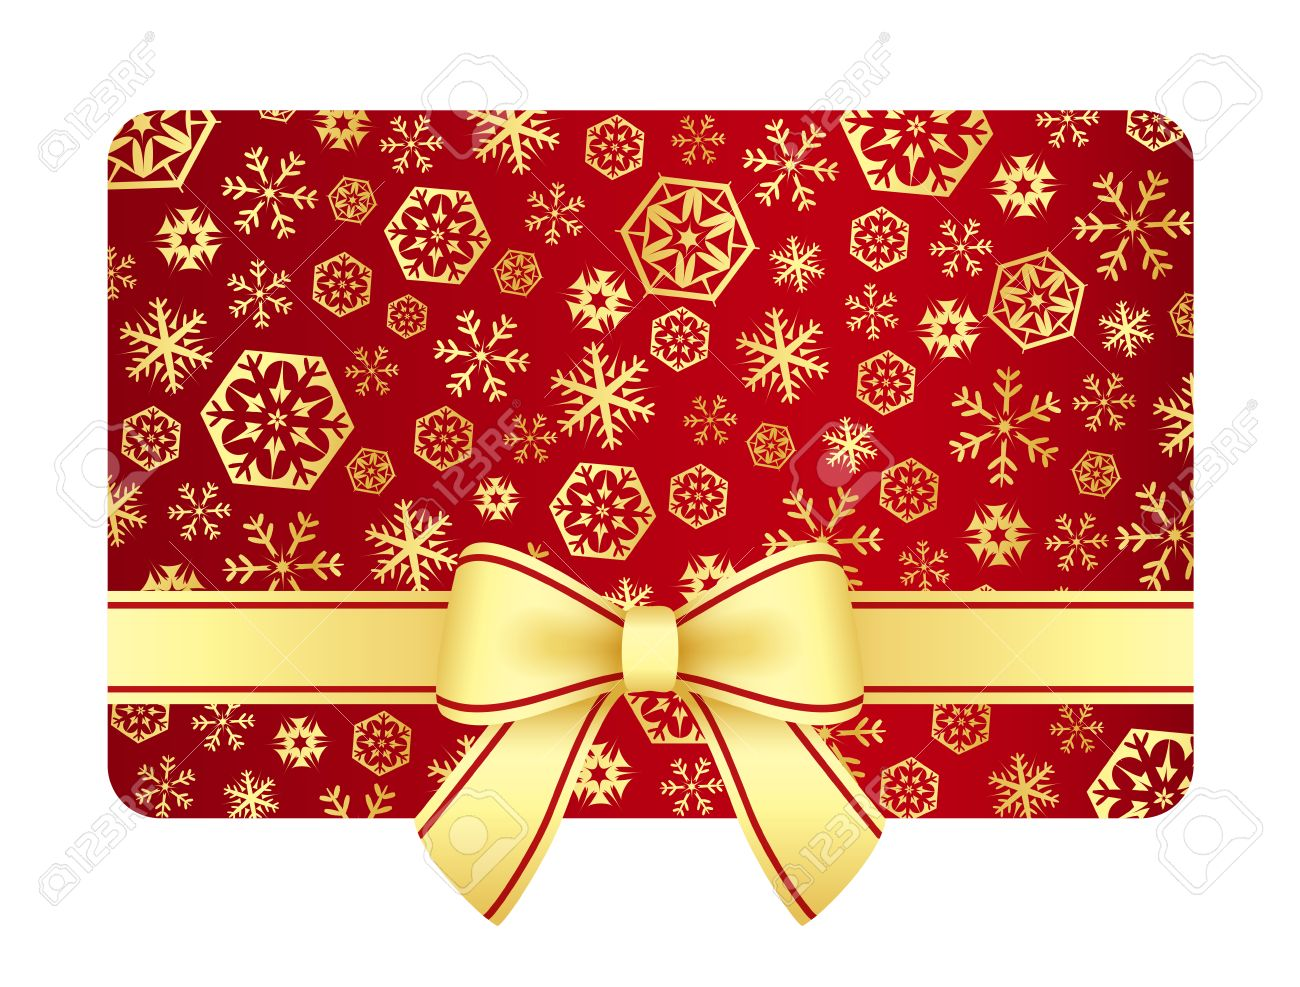 Luxury Christmas Gift Card With Golden Snowflakes And Ribbon Royalty ...